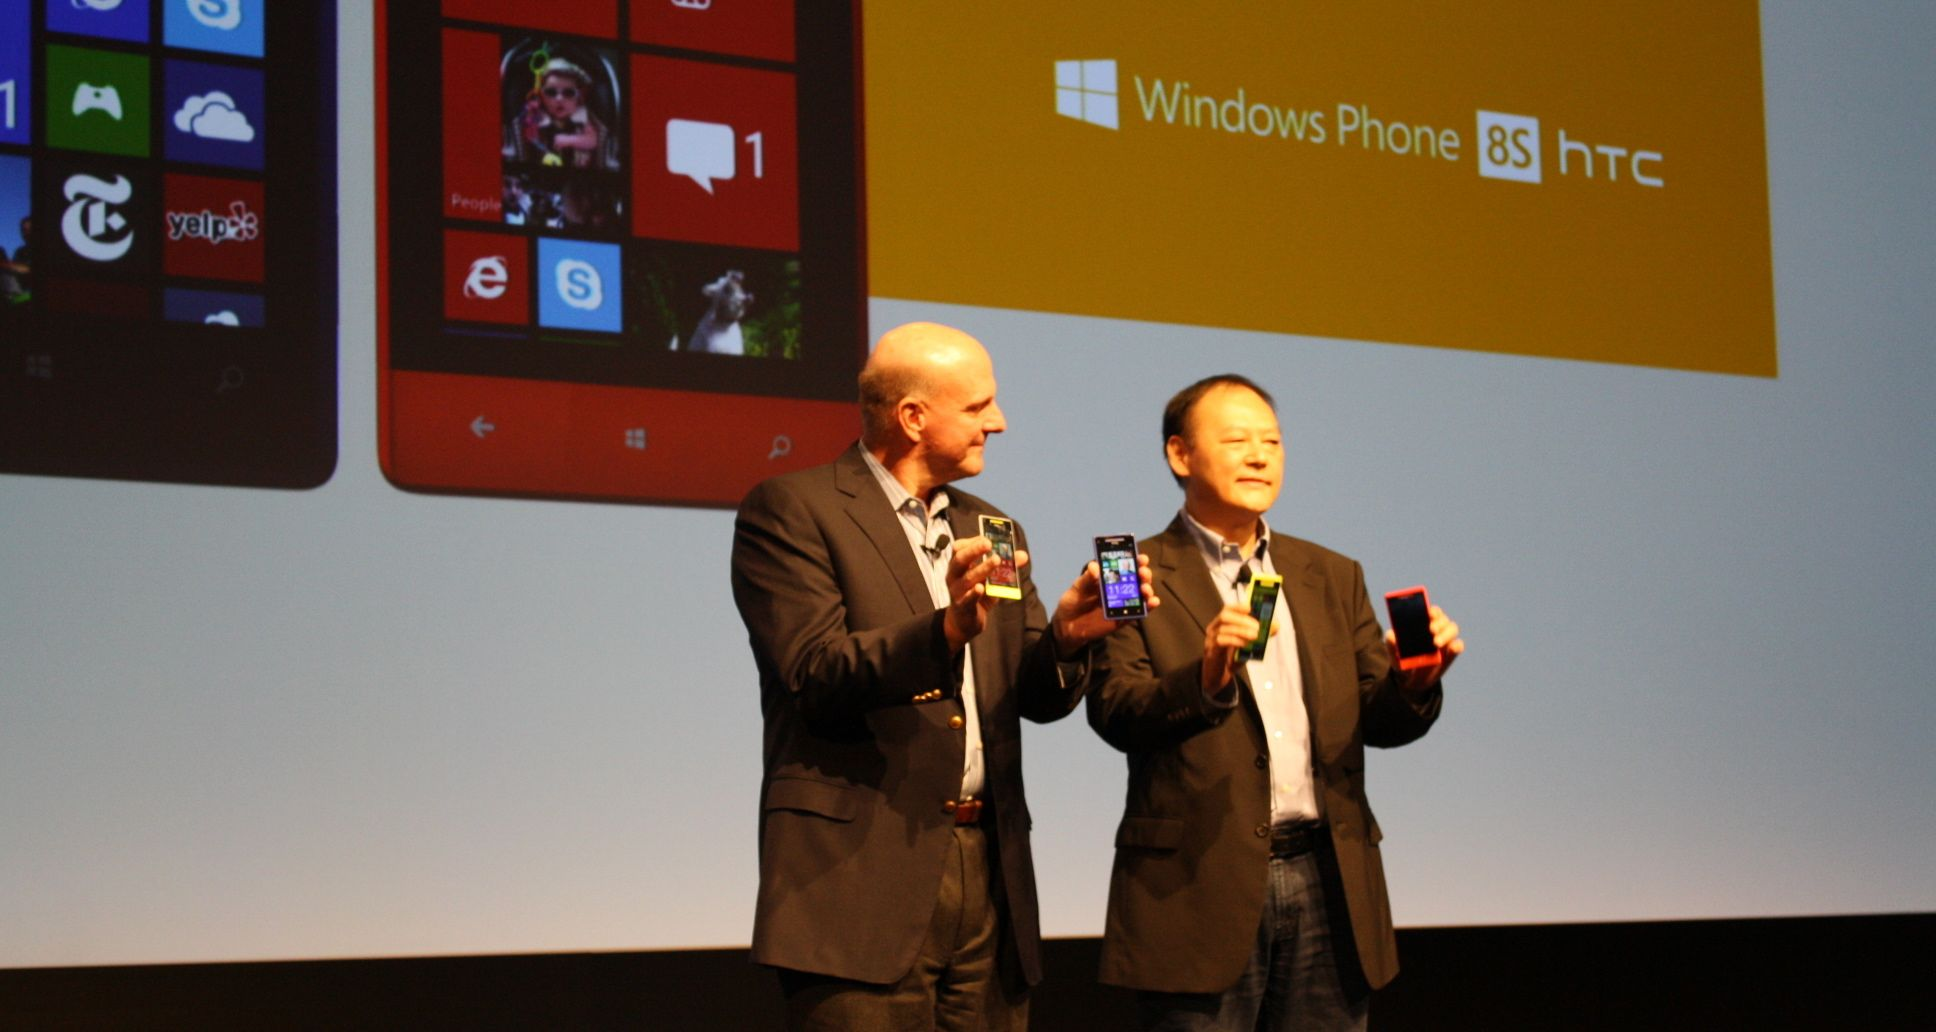 Microsoft in discussions with HTC for devices with both Windows Phone and Android installed